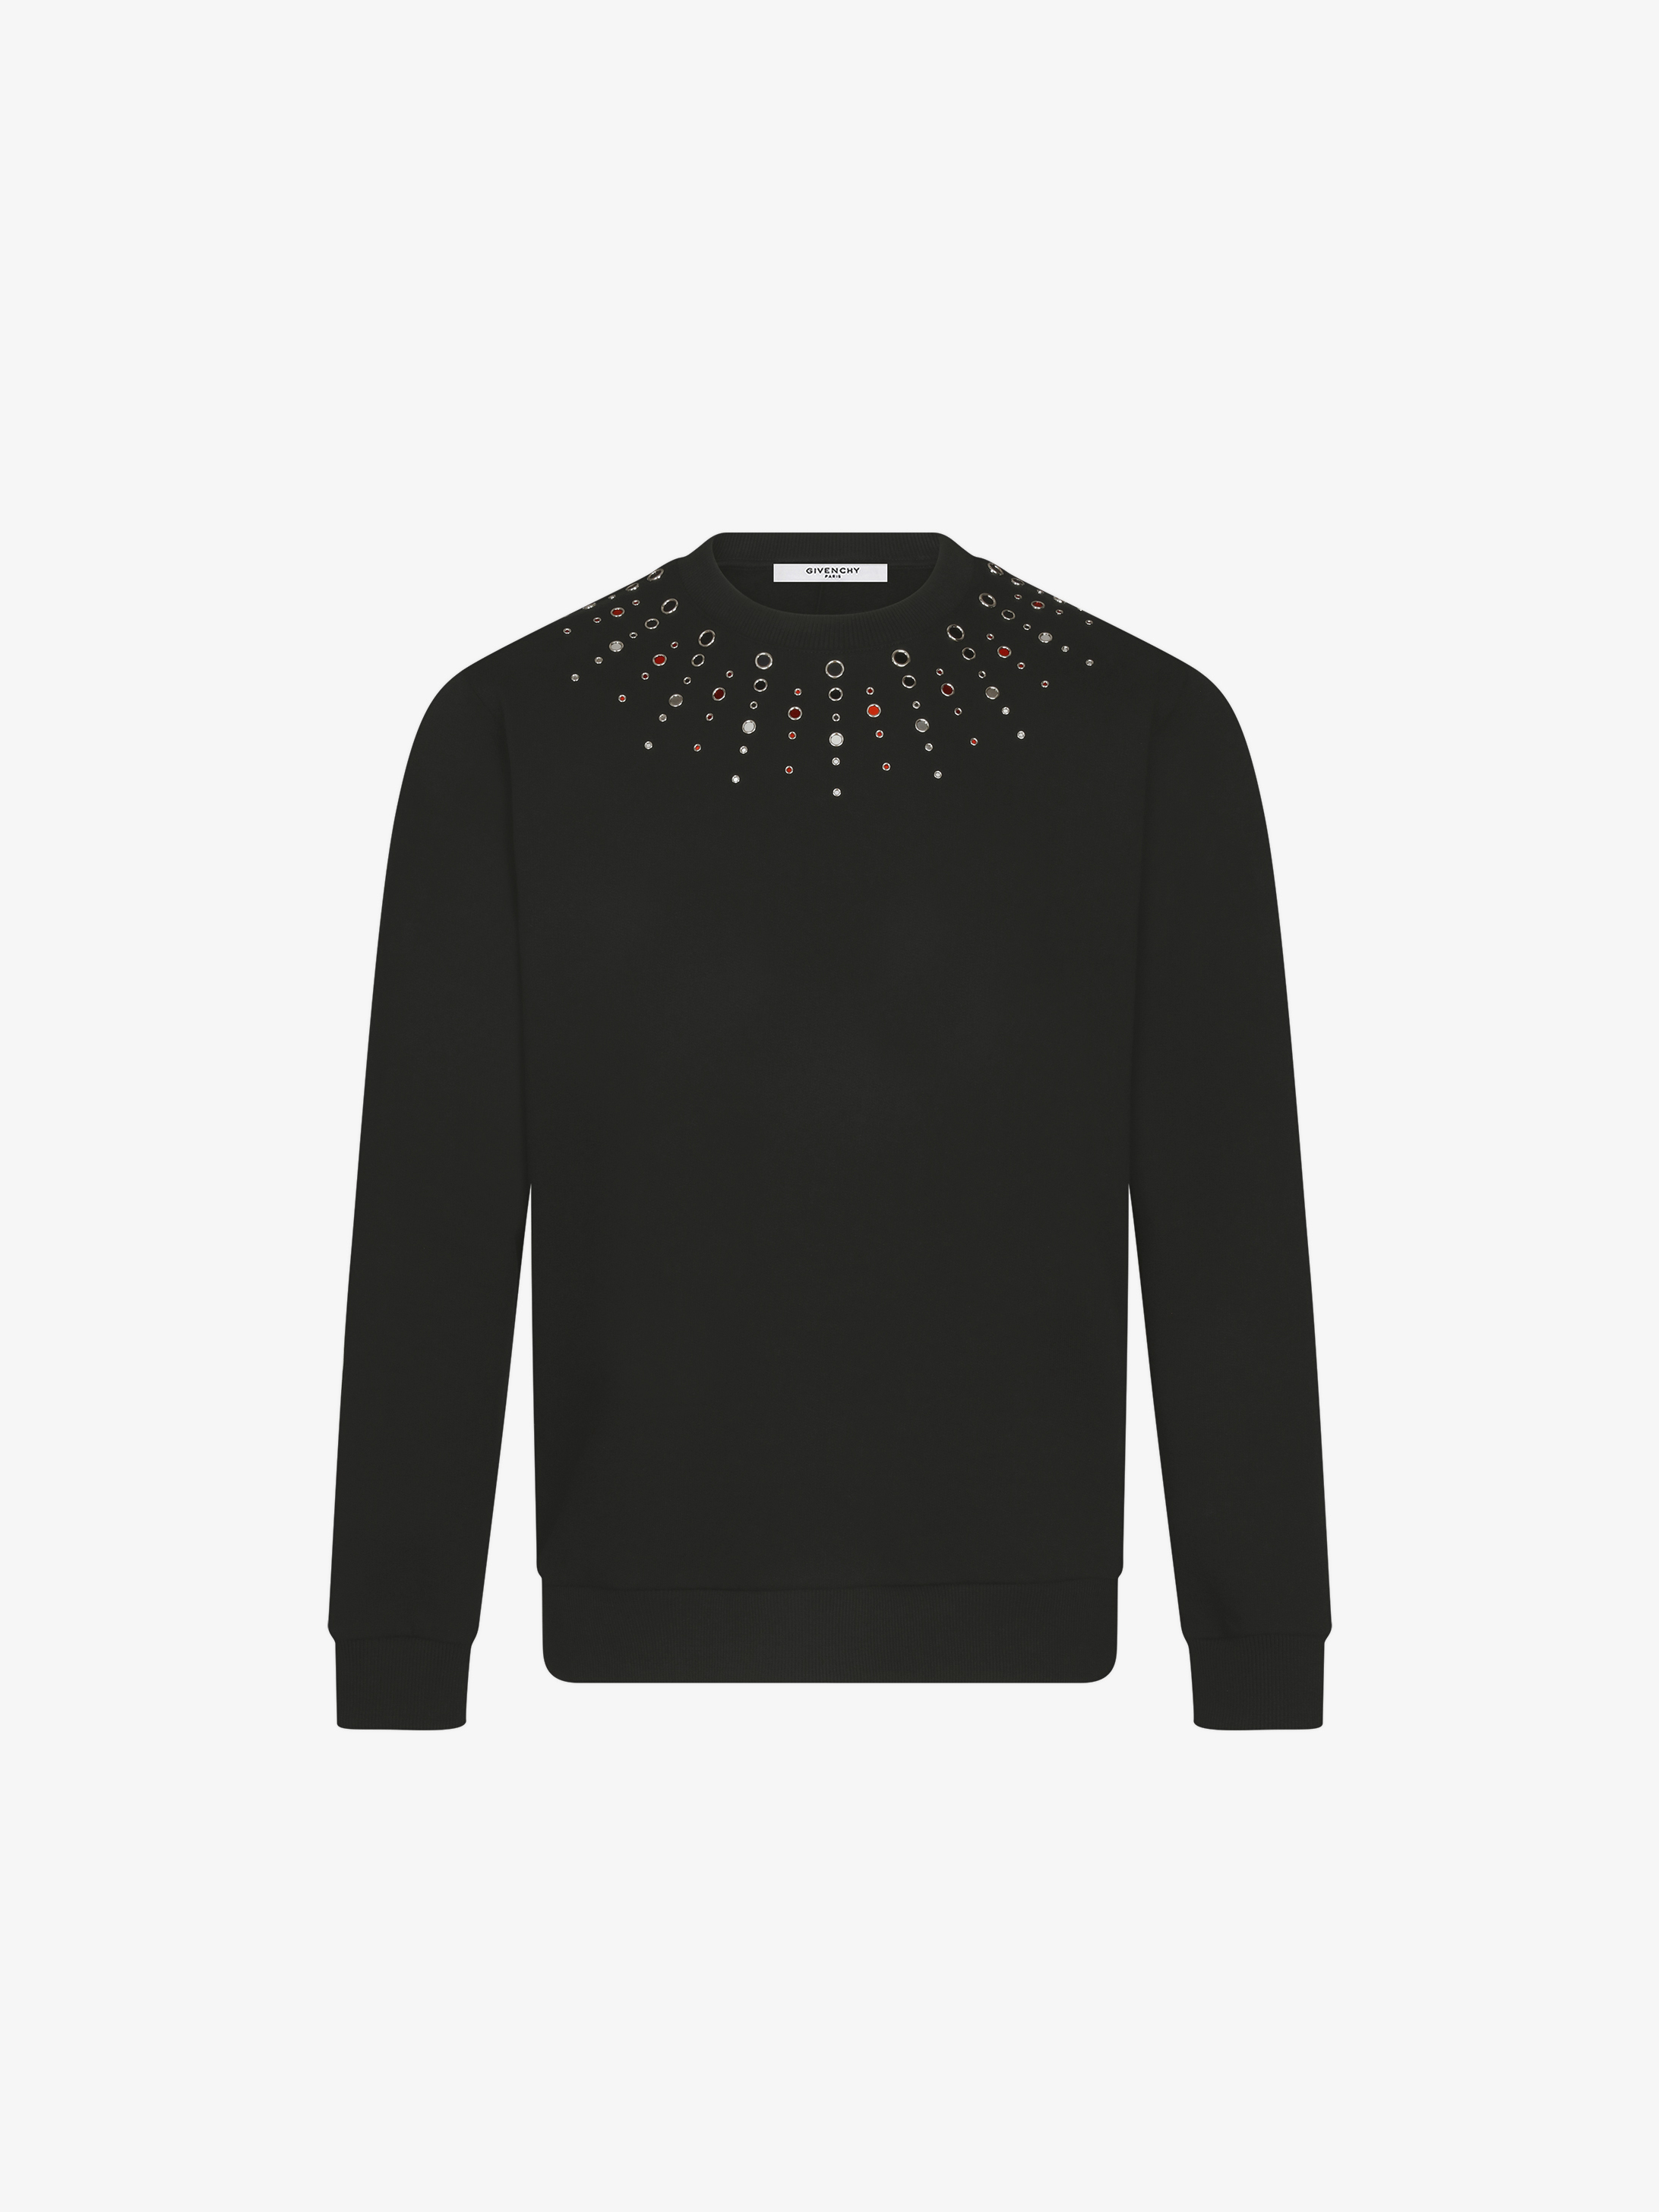 Embroidered mirrors sweatshirt